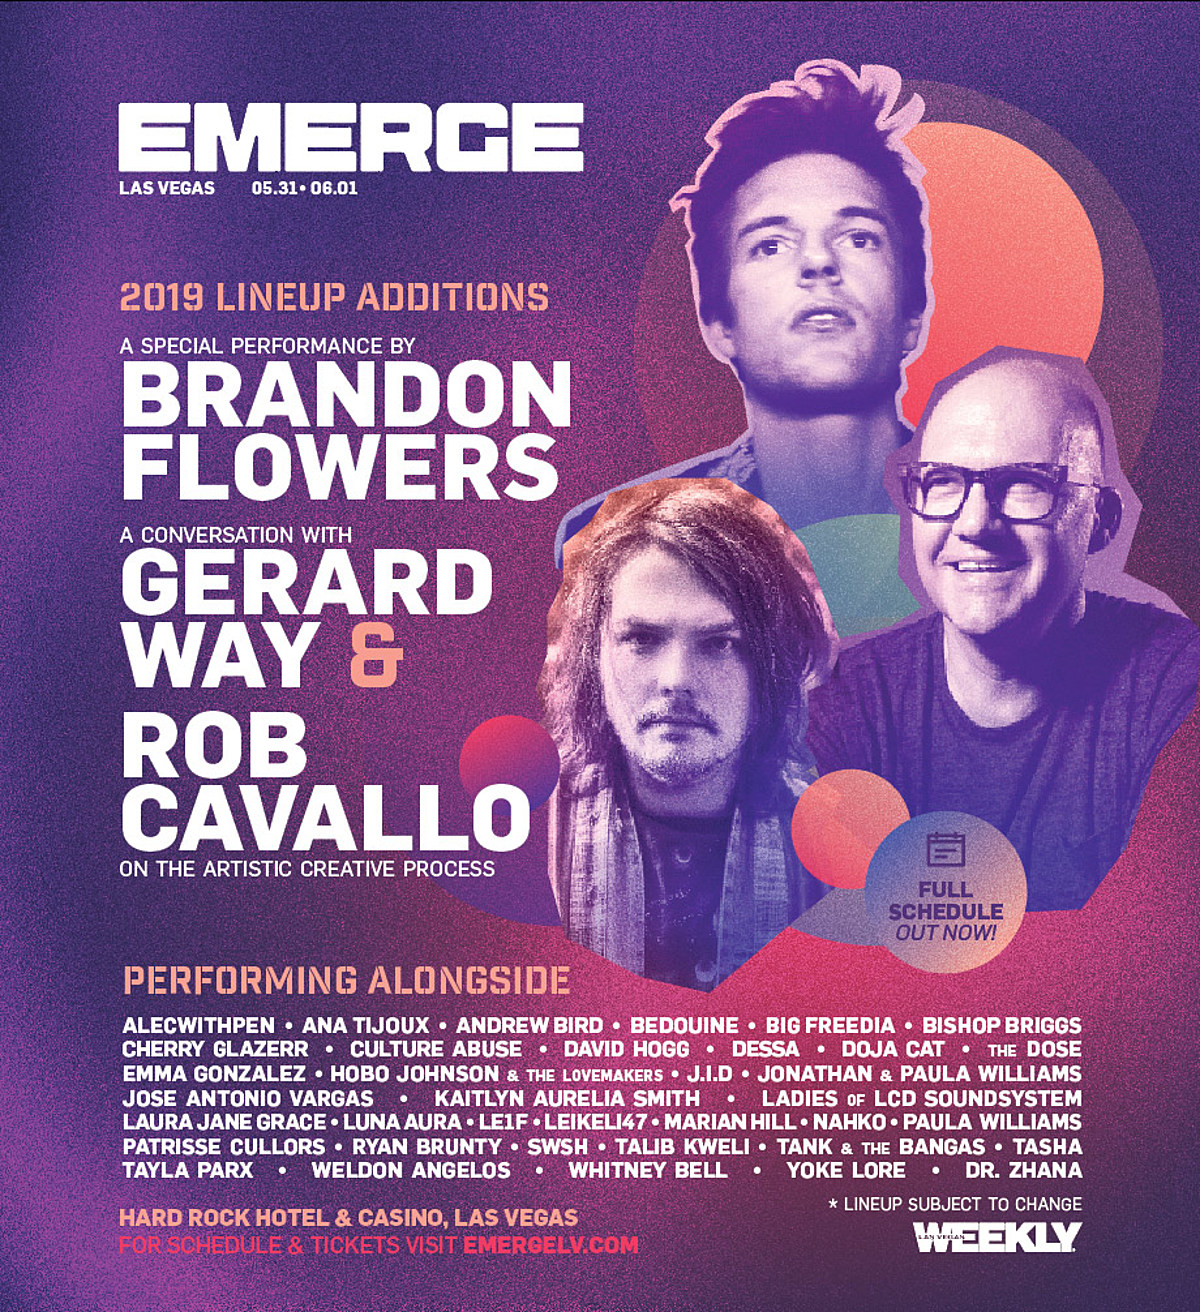 Win tickets a hotel stay to Emerge 2019 in Las Vegas